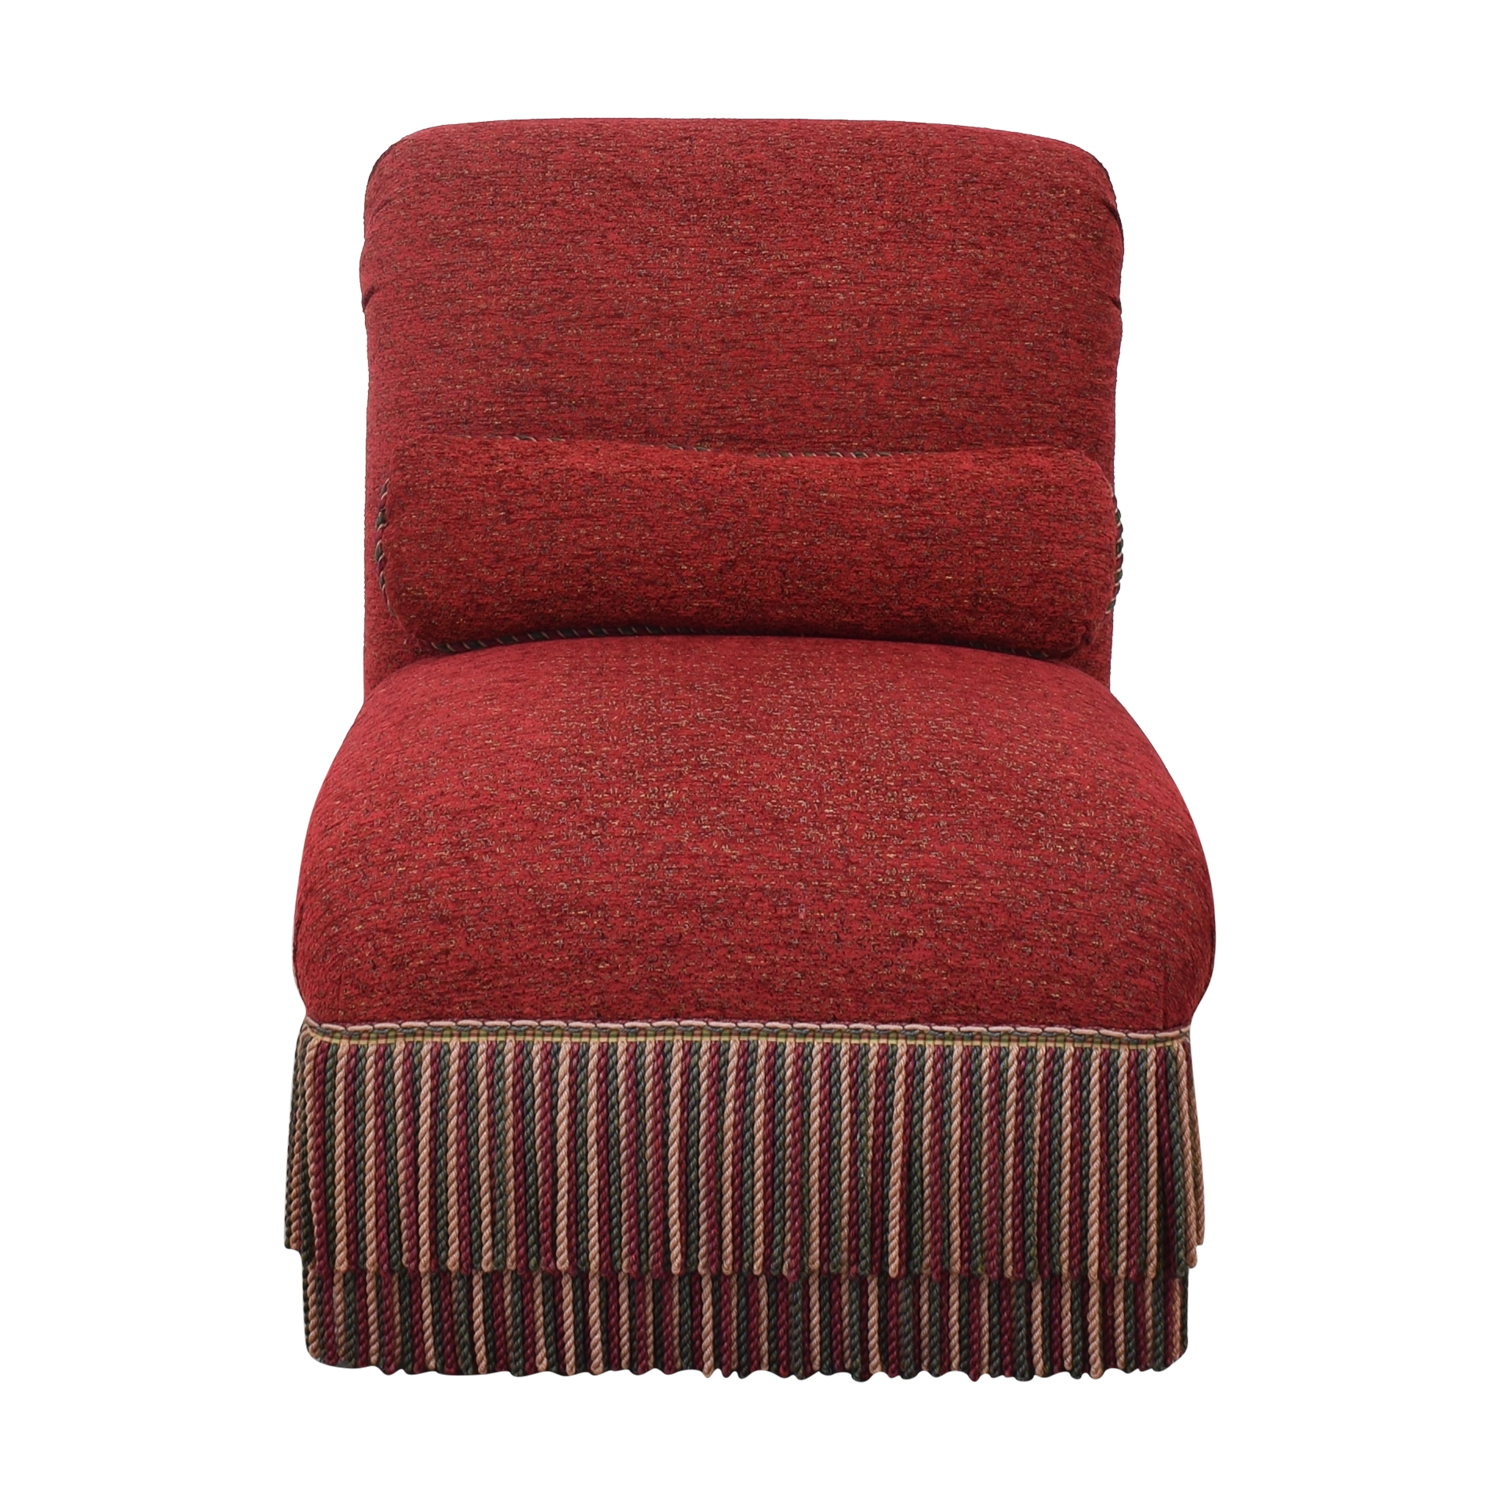 Upholstered Slipper Chair discount